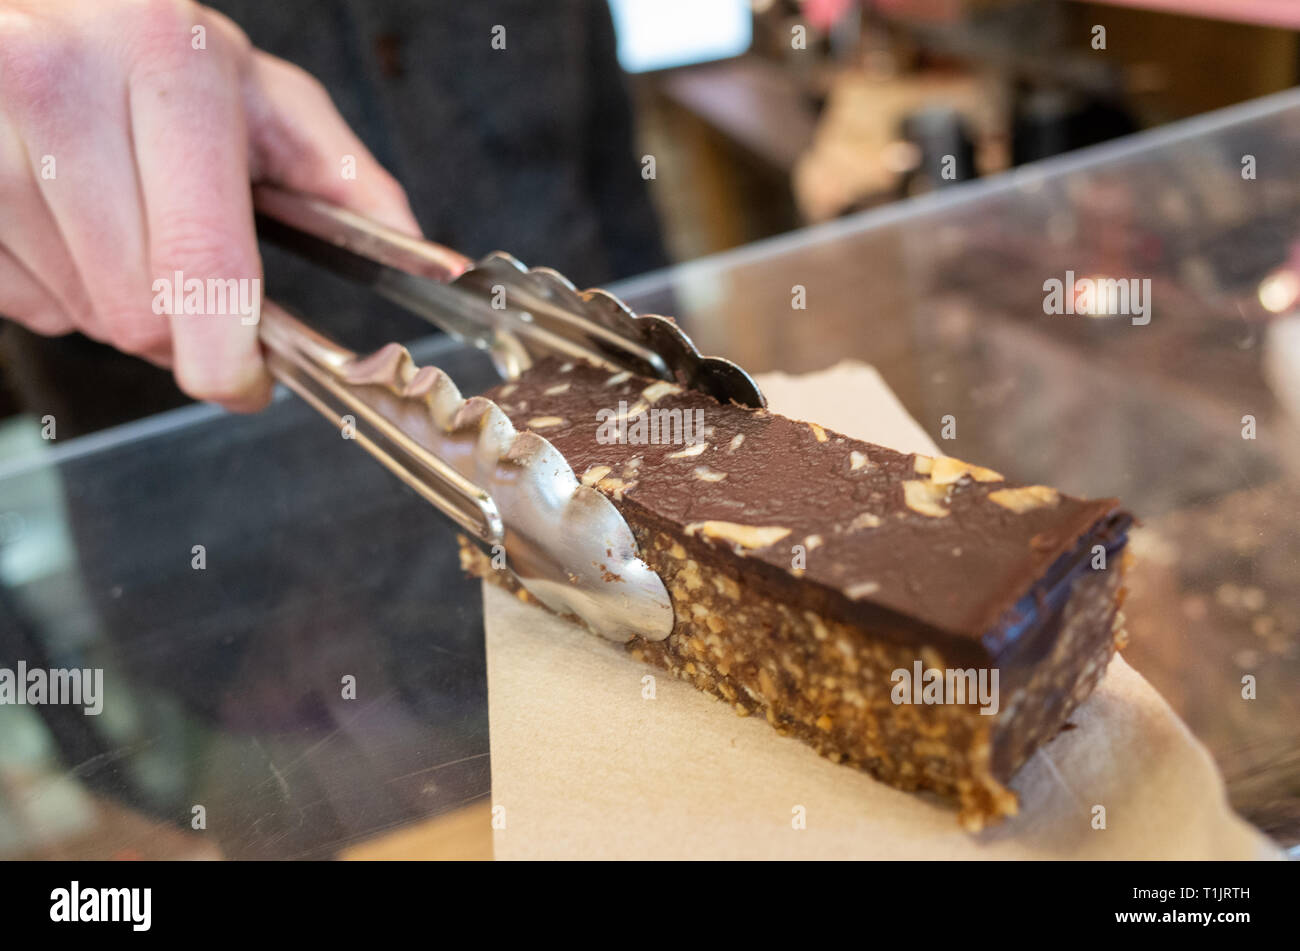 CARDIFF, UNITED KINGDOM.  17 January 2019.  Sam Thomas of Hardlines coffee shop serves up a vegan Snickers themed homemade chocolate granola bar in an - Stock Image